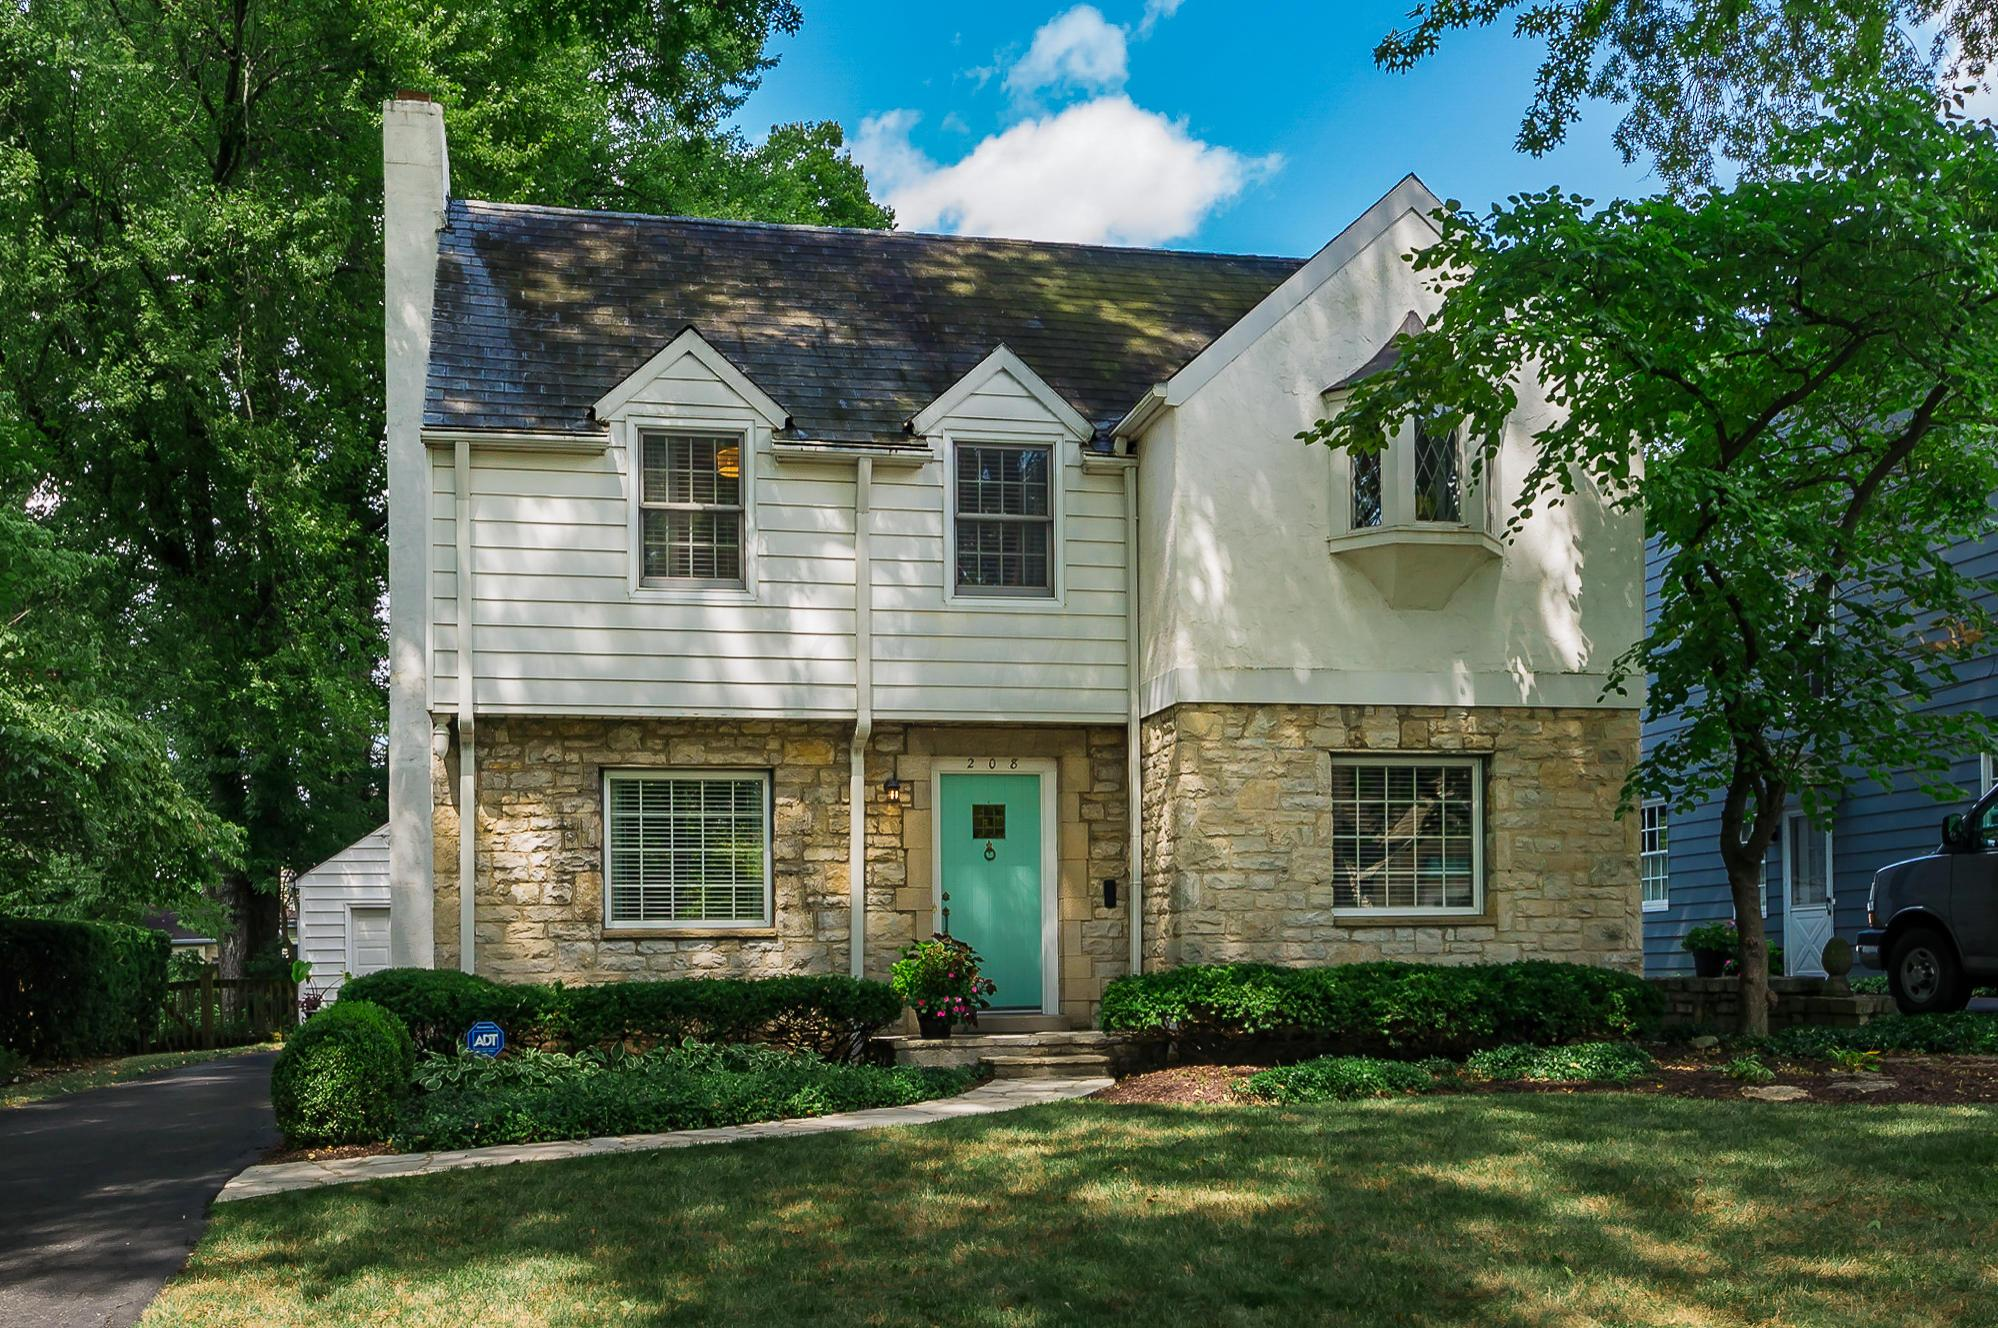 Photo of 208 Cooke Road, Columbus, OH 43214